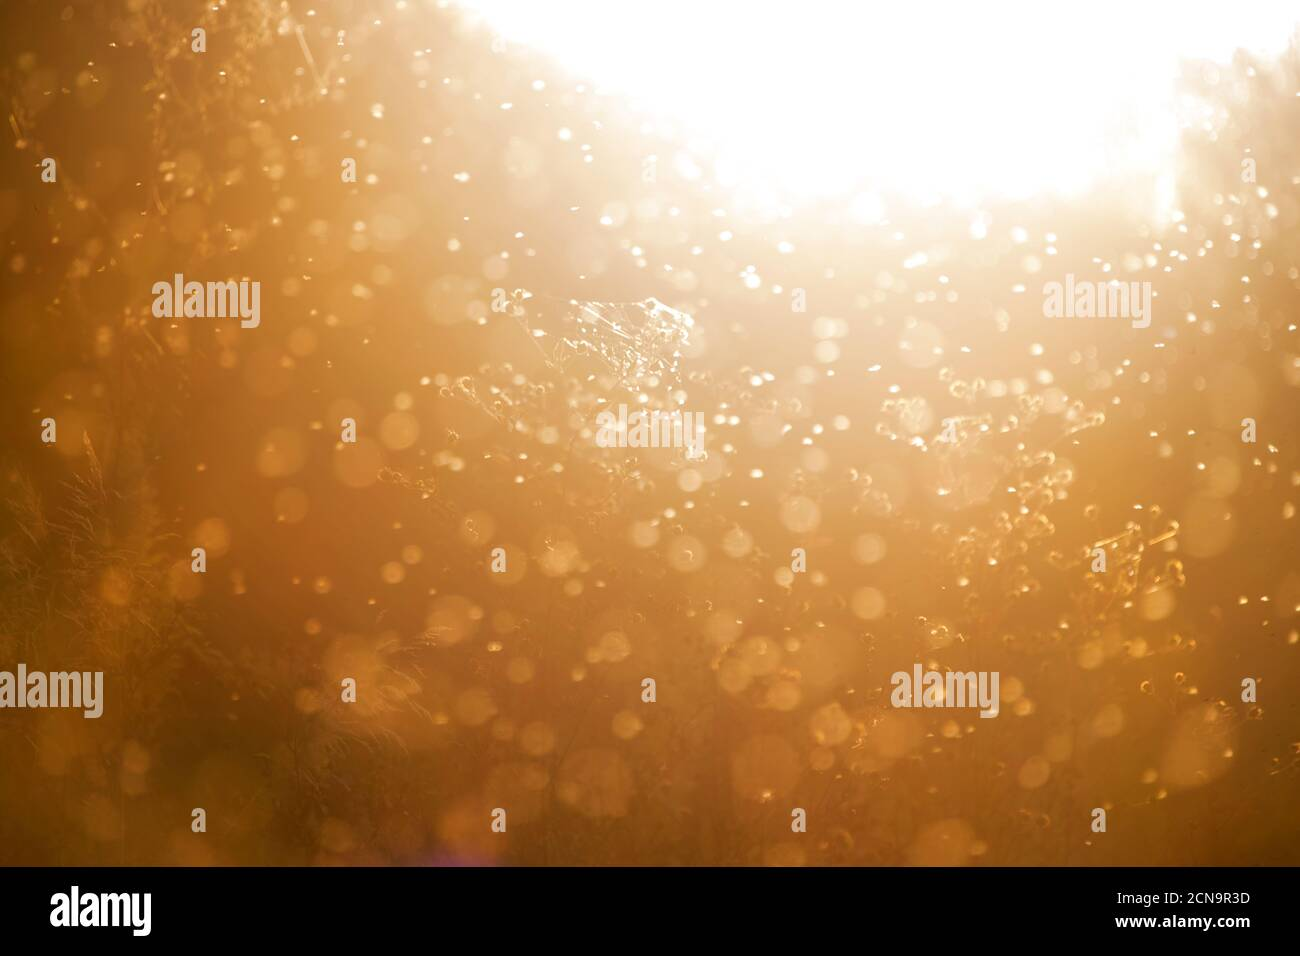 Blurred nature background. Small midges fly in the rays of light. Insects swarm in the rays of the setting sun. Mosquitoes. Beautiful nature, shining Stock Photo